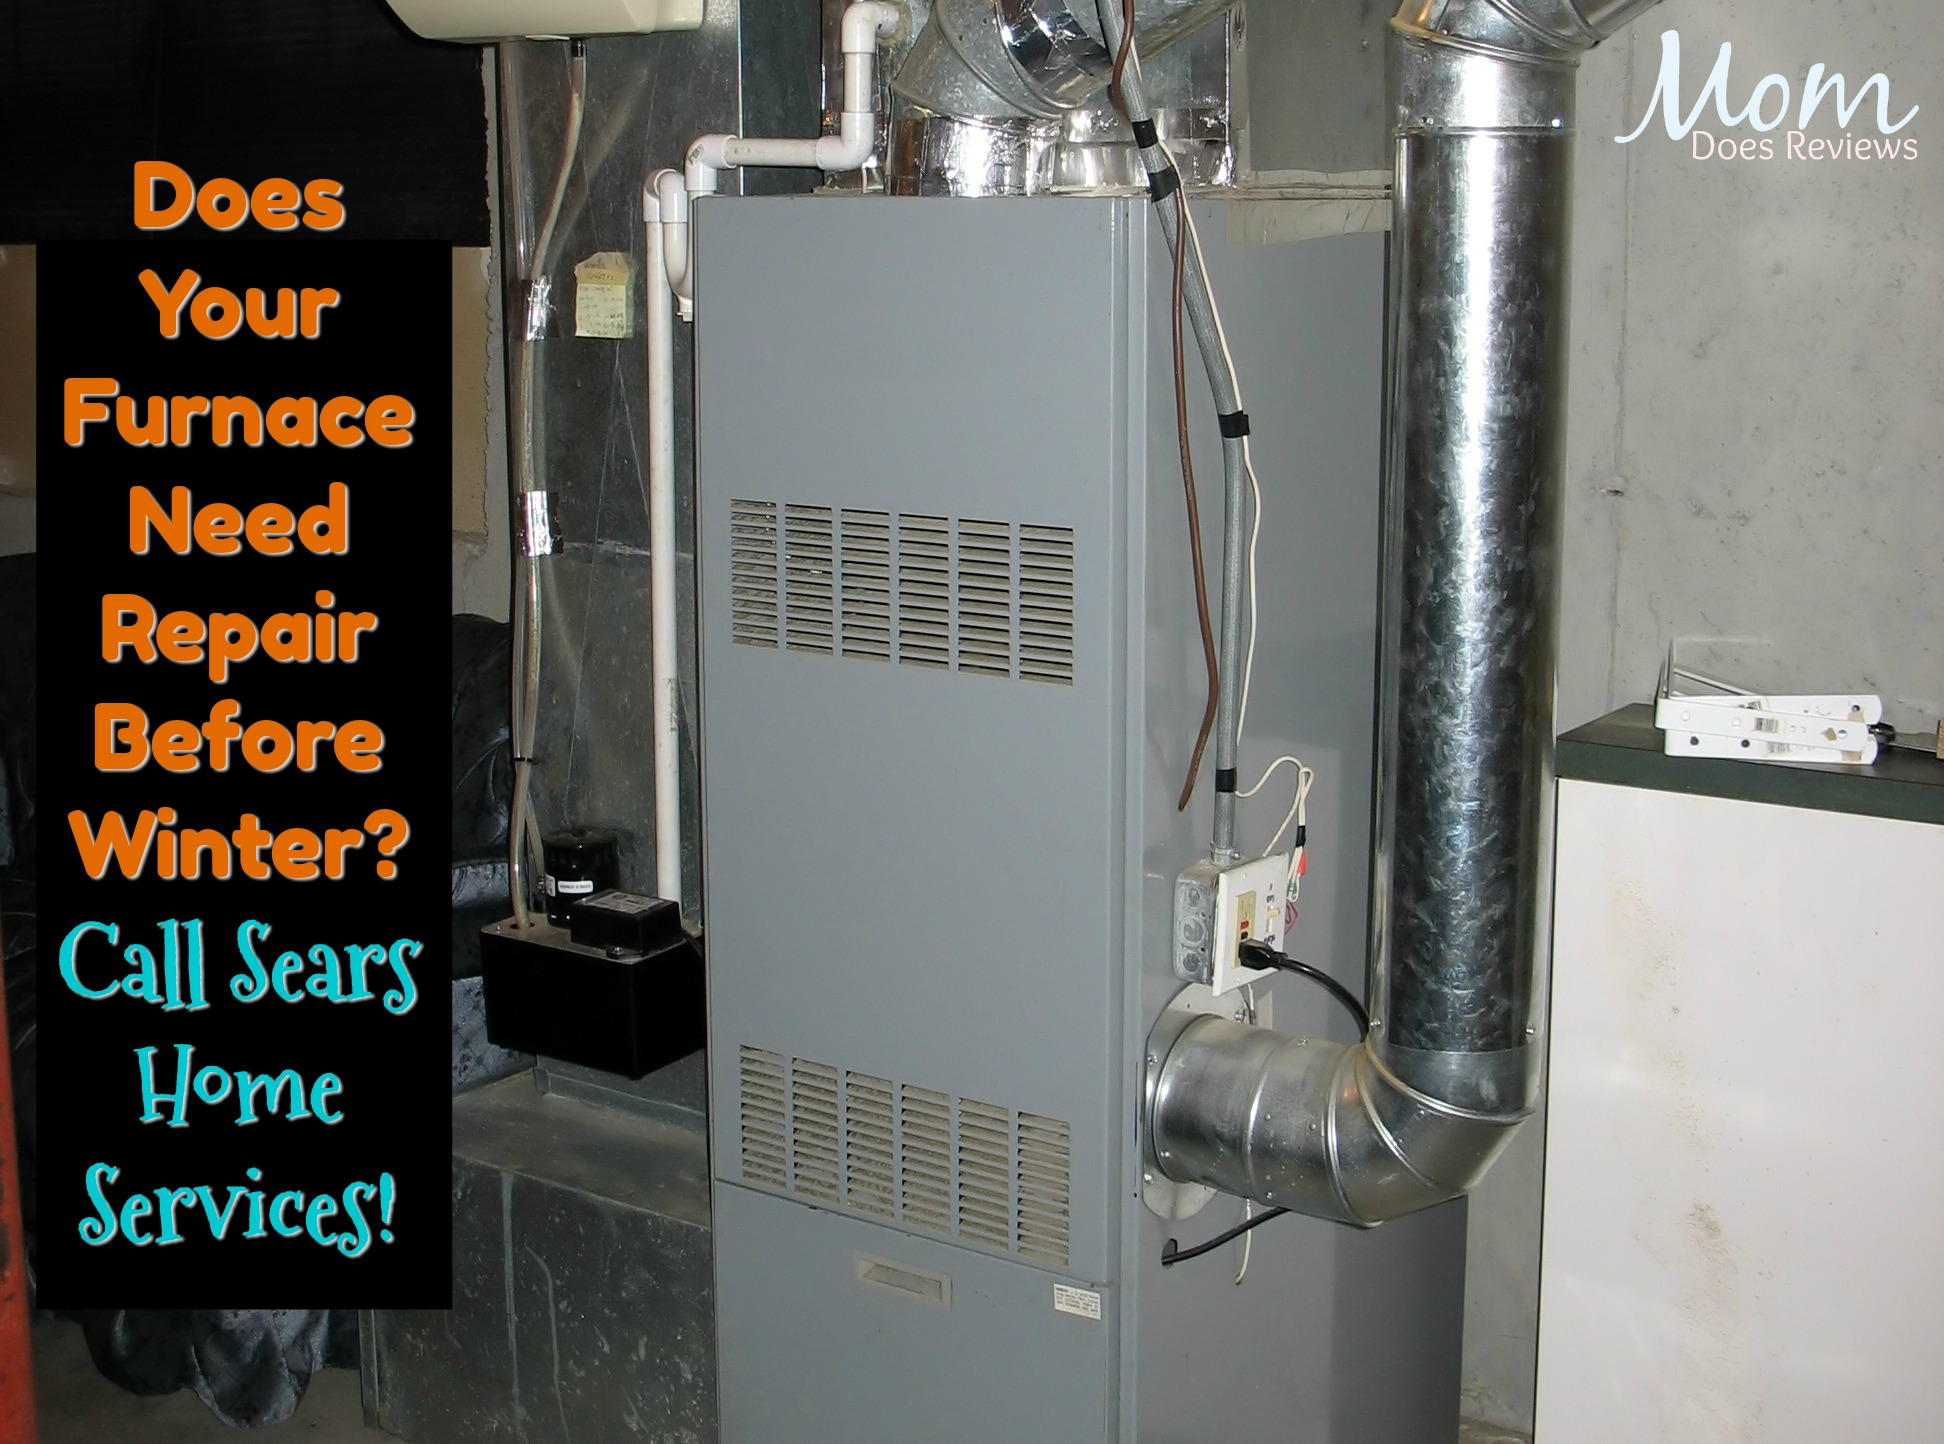 Keep Warm this Winter with Quick and Easy Fixes for Home Furnaces #HouseExperts #SearsHVAC